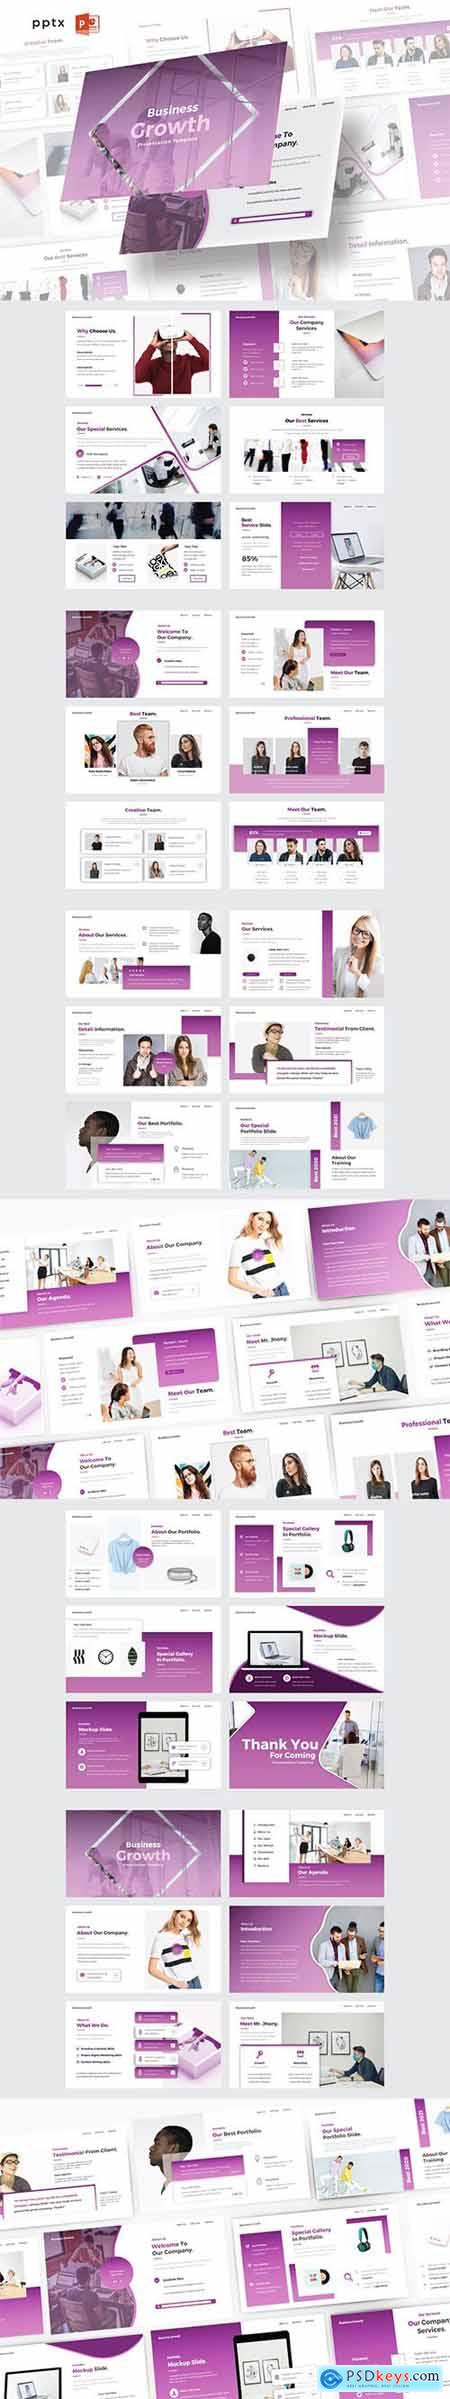 BUSINESS GROWTH - Powerpoint, Keynote and Google Slide Template